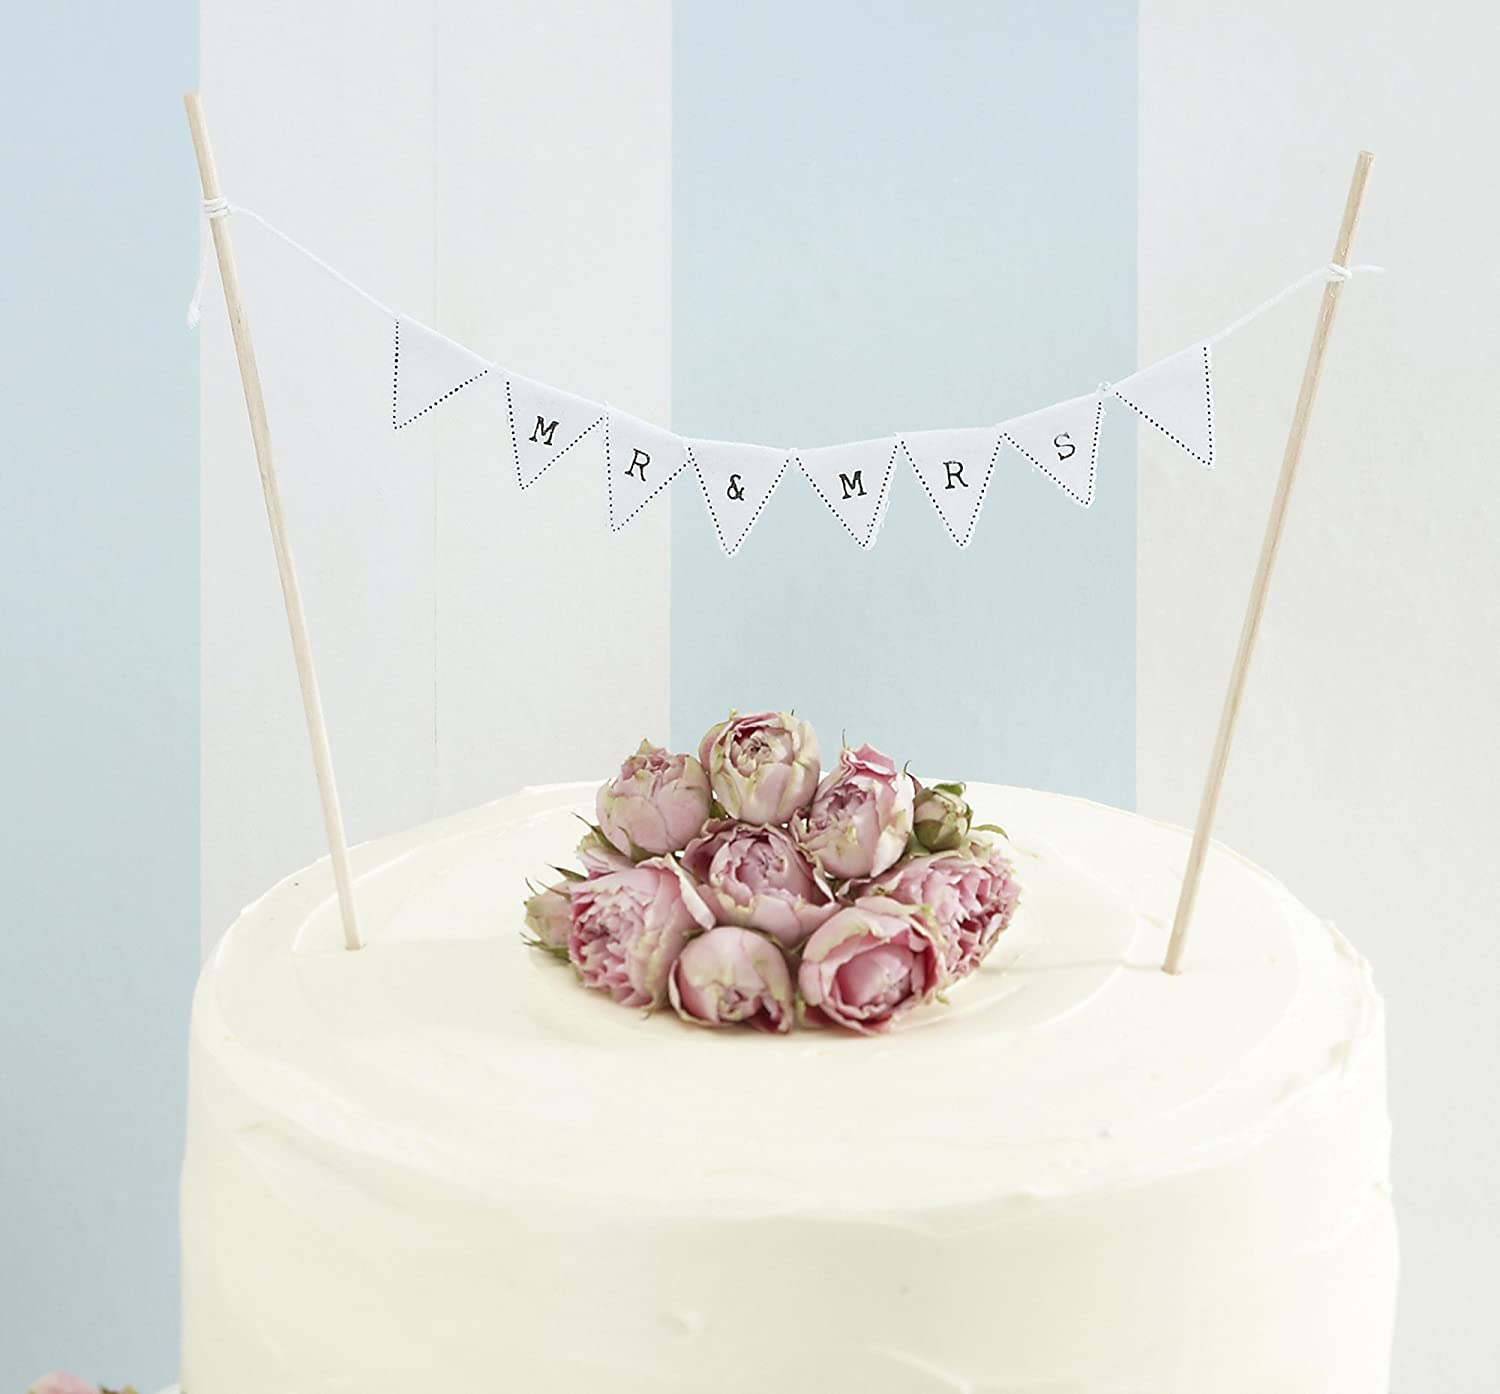 Amazon.com: Ginger Ray Vintage Mr. & Mrs. Bunting Wedding Cake ...